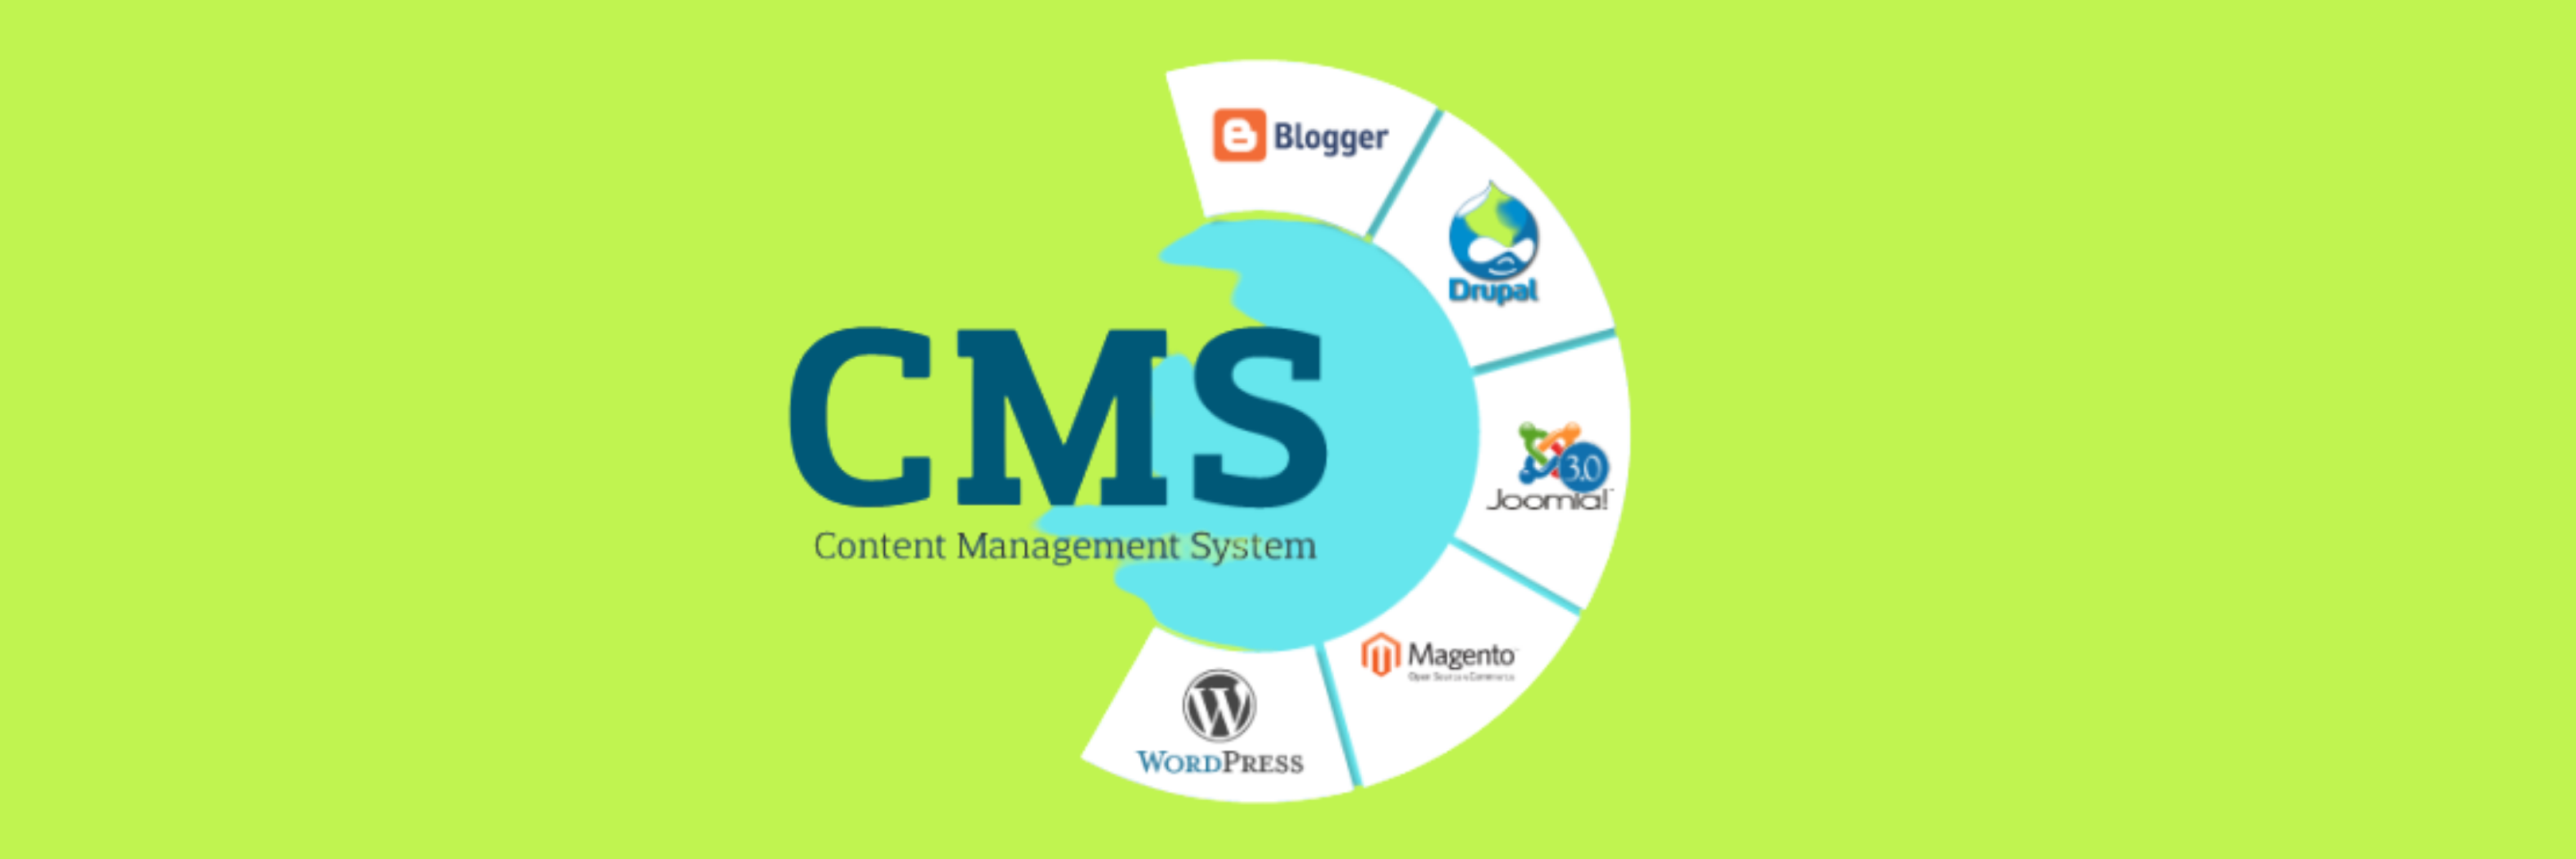 why choose wordpress cms system